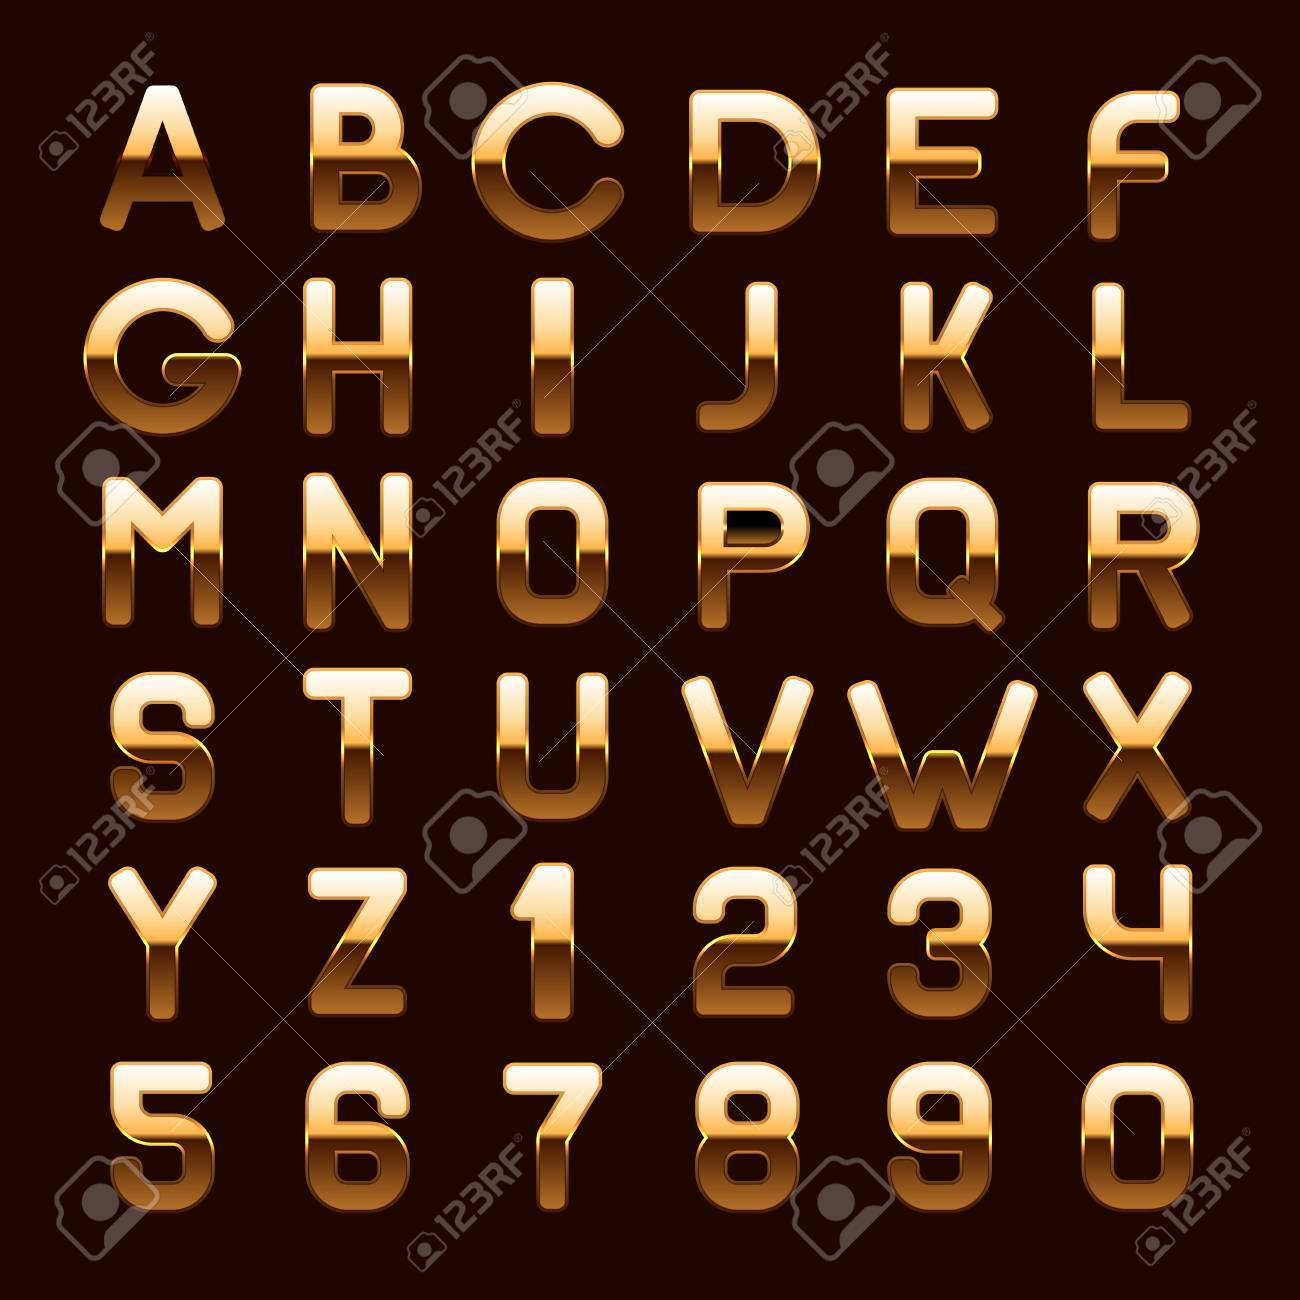 f2215a37f933 Golden Metallic Shiny ABC Letters and Numbers Isolated on Dark Background.  Vector illustration Stock Vector